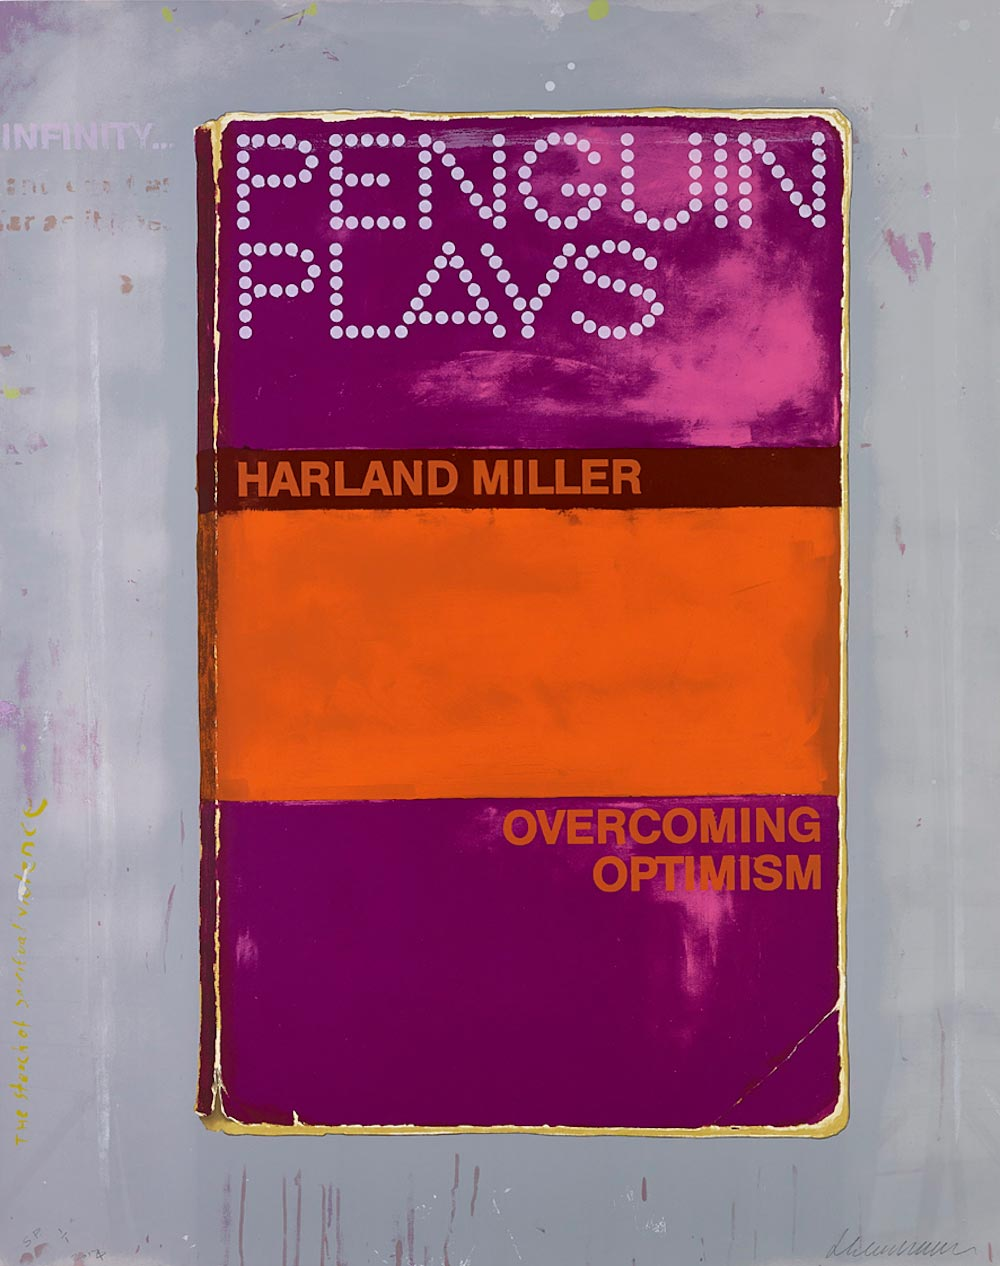 Harland Miller Overcoming Optimism